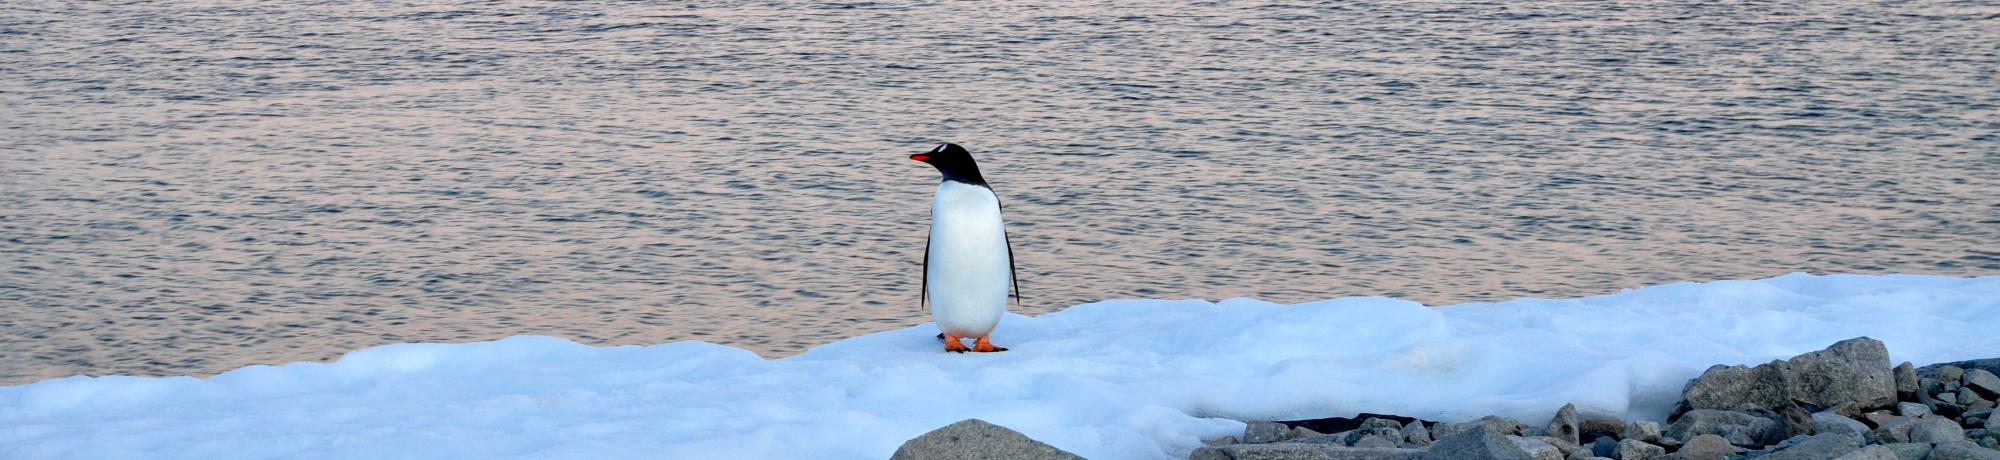 UC Davis Study Abroad, Seminars Abroad Antarctica, Ecology Program, Header Image, On Site Page